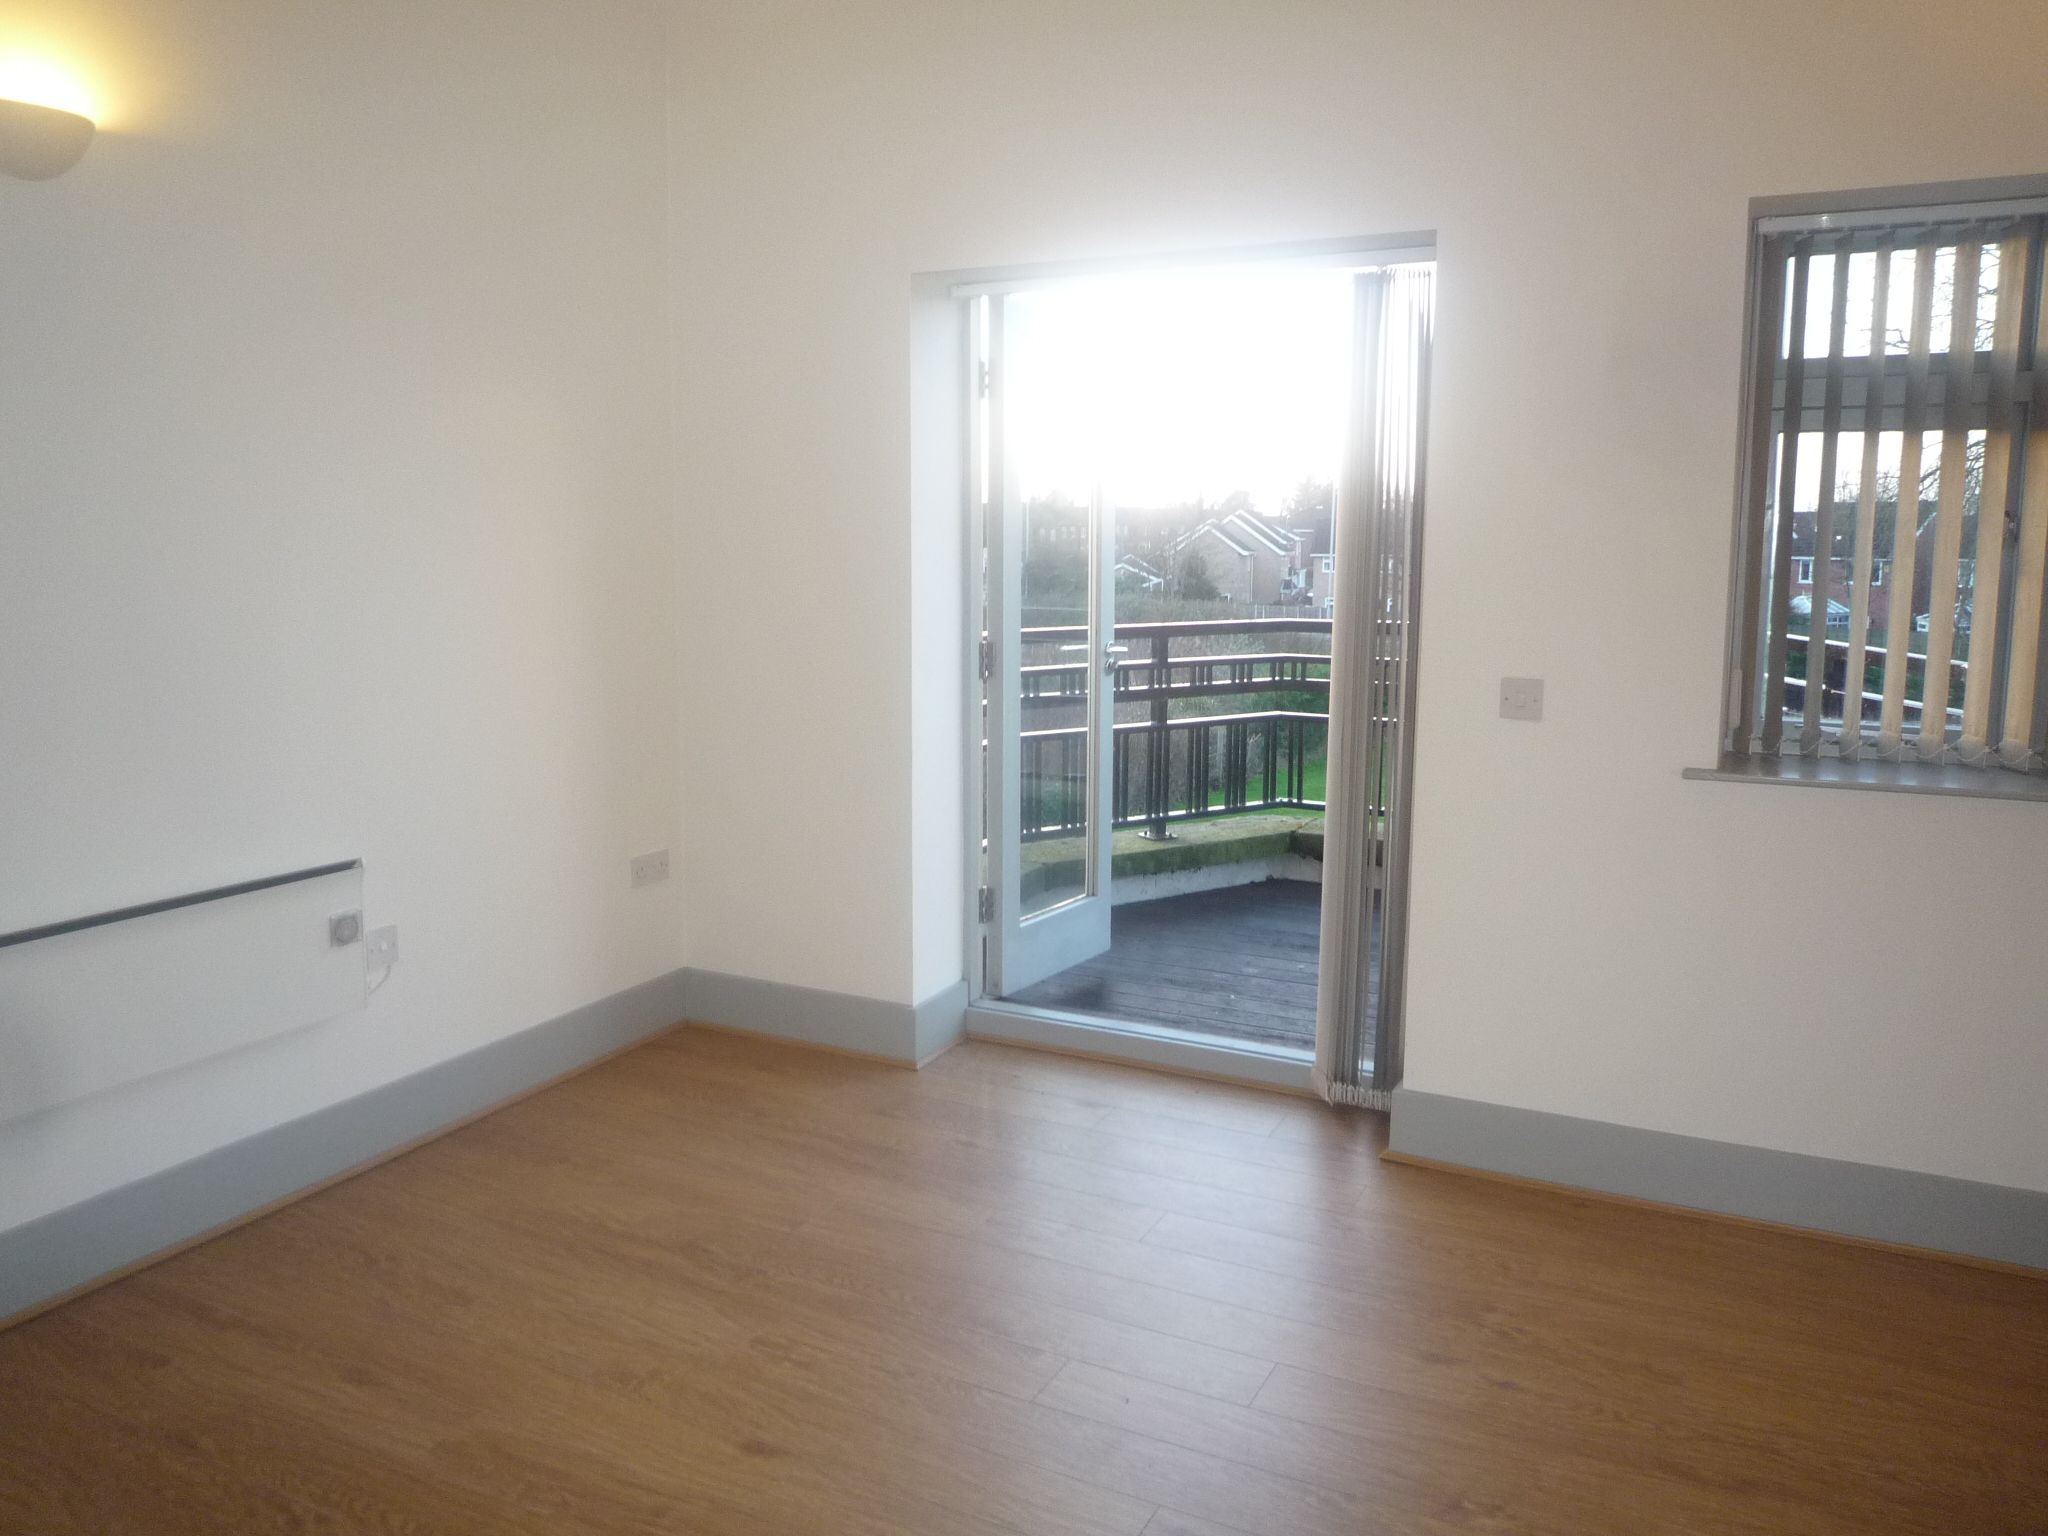 2 bedroom apartment flat/apartment For Sale in Cheadle - Photograph 5.